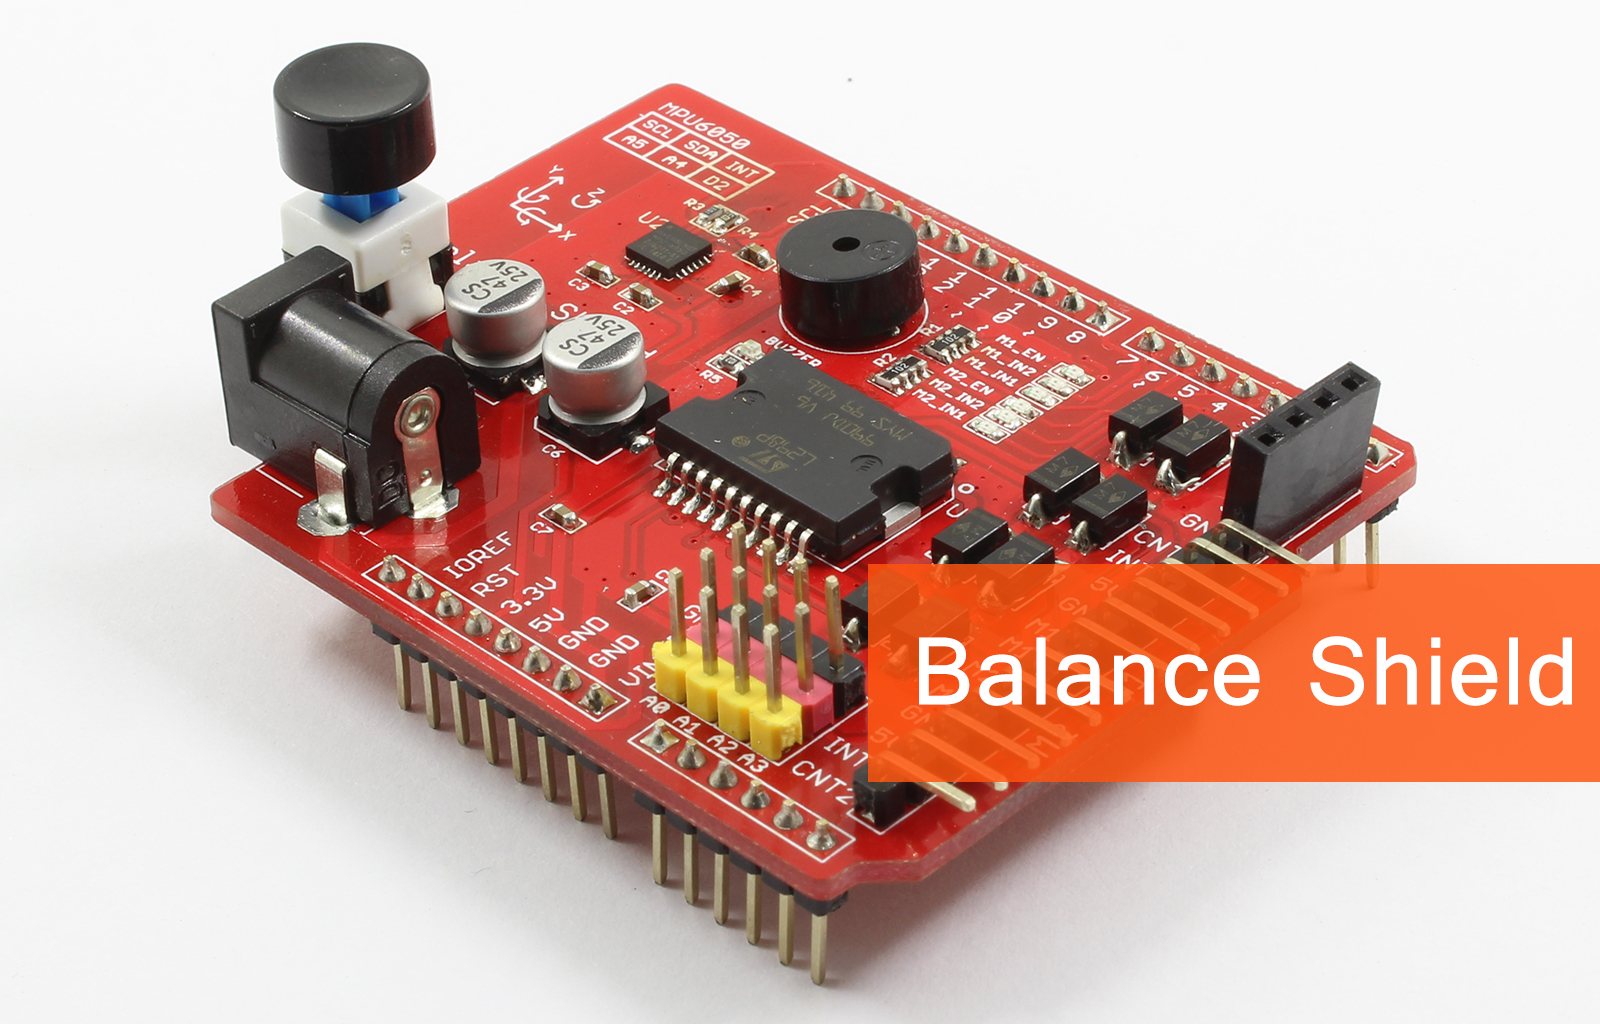 Balanbot Best Arduino Self Balancing Robot Ever Indiegogo How To Make Your Own Board Use For Projects The Uses One 5mm And Two 3mm Thick Acrylic Boards Other Accessories Its Main Structure Is Used Fix Motors